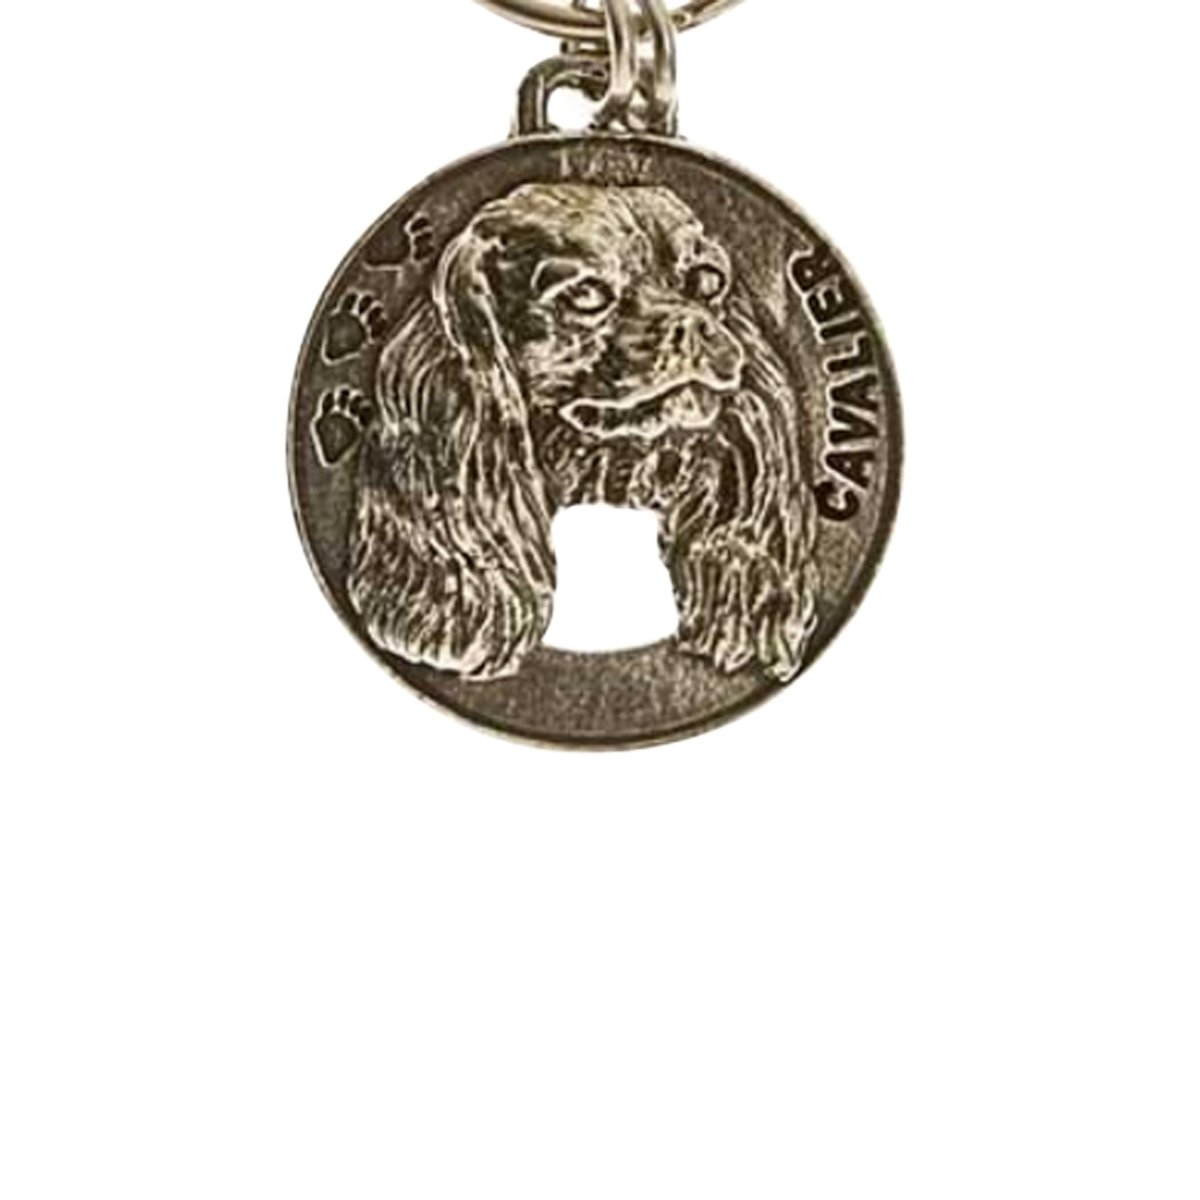 Creative Pewter Designs, Pewter Cavalier King Charles Key Chain, Antiqued Finish, DK044 by Creative Pewter Designs (Image #1)